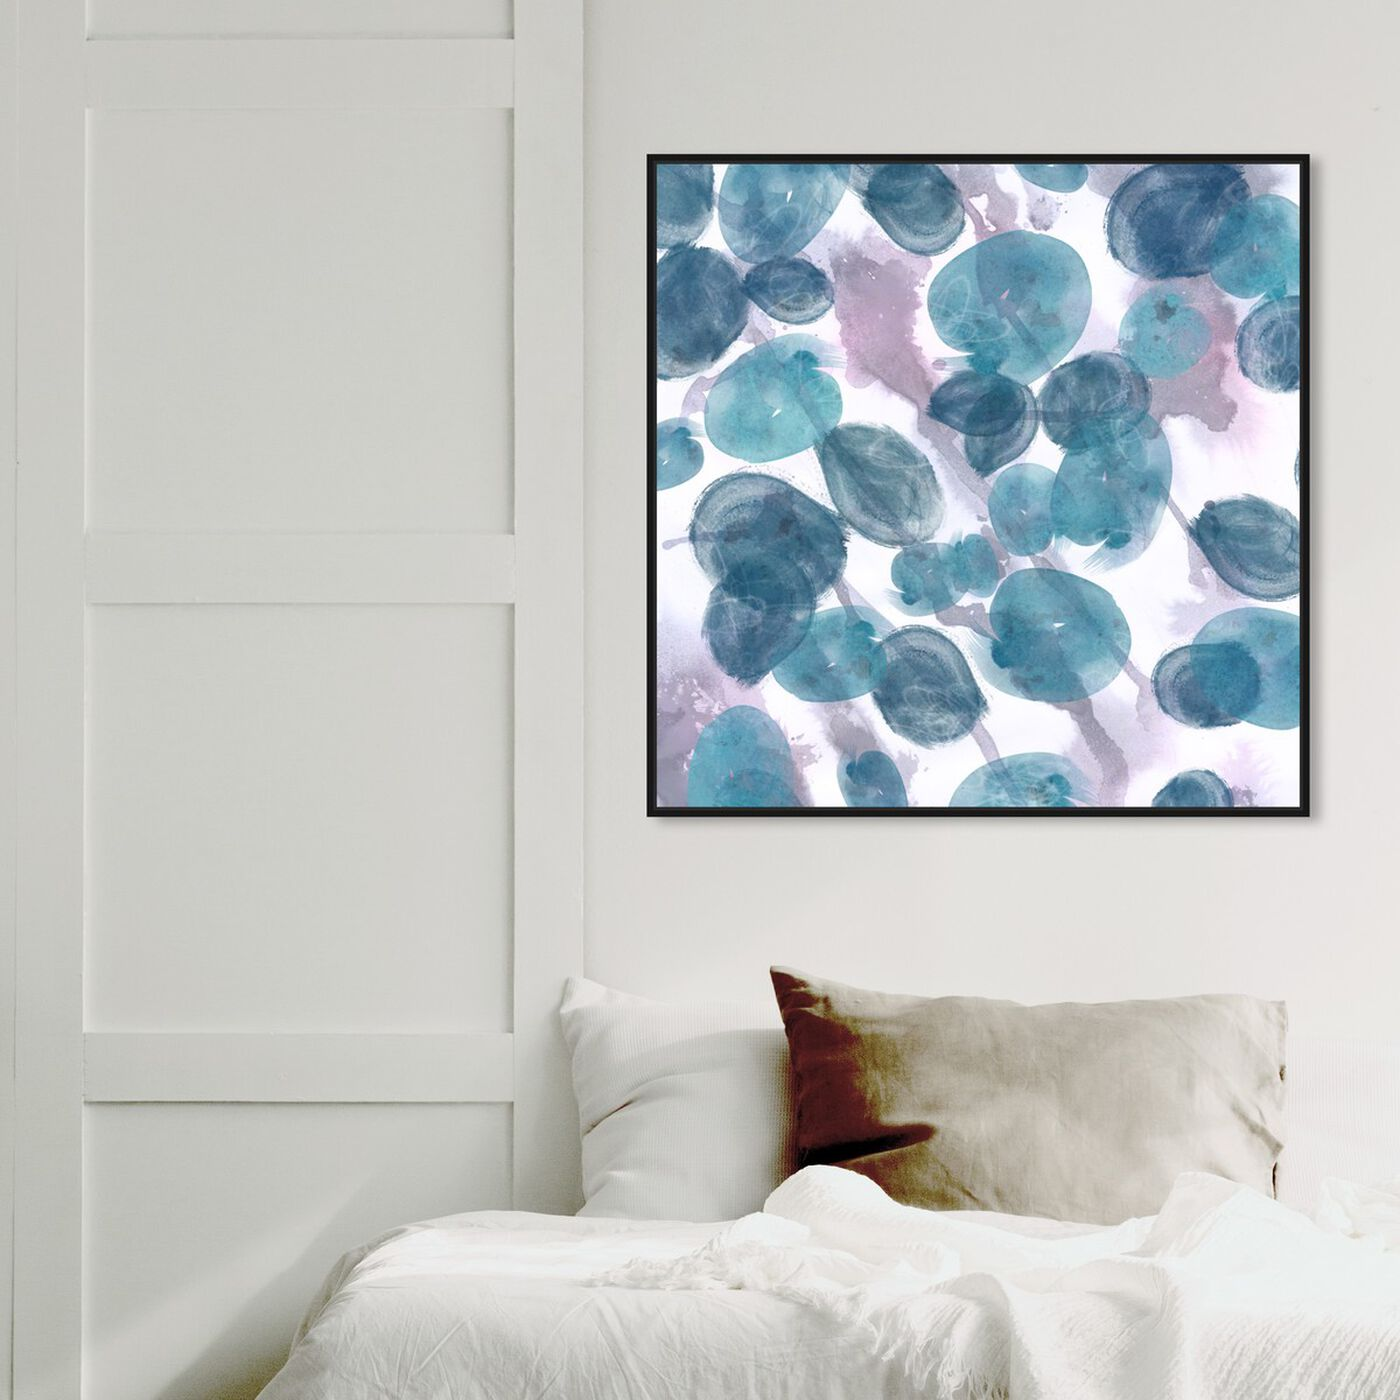 Hanging view of Bubbles featuring abstract and paint art.